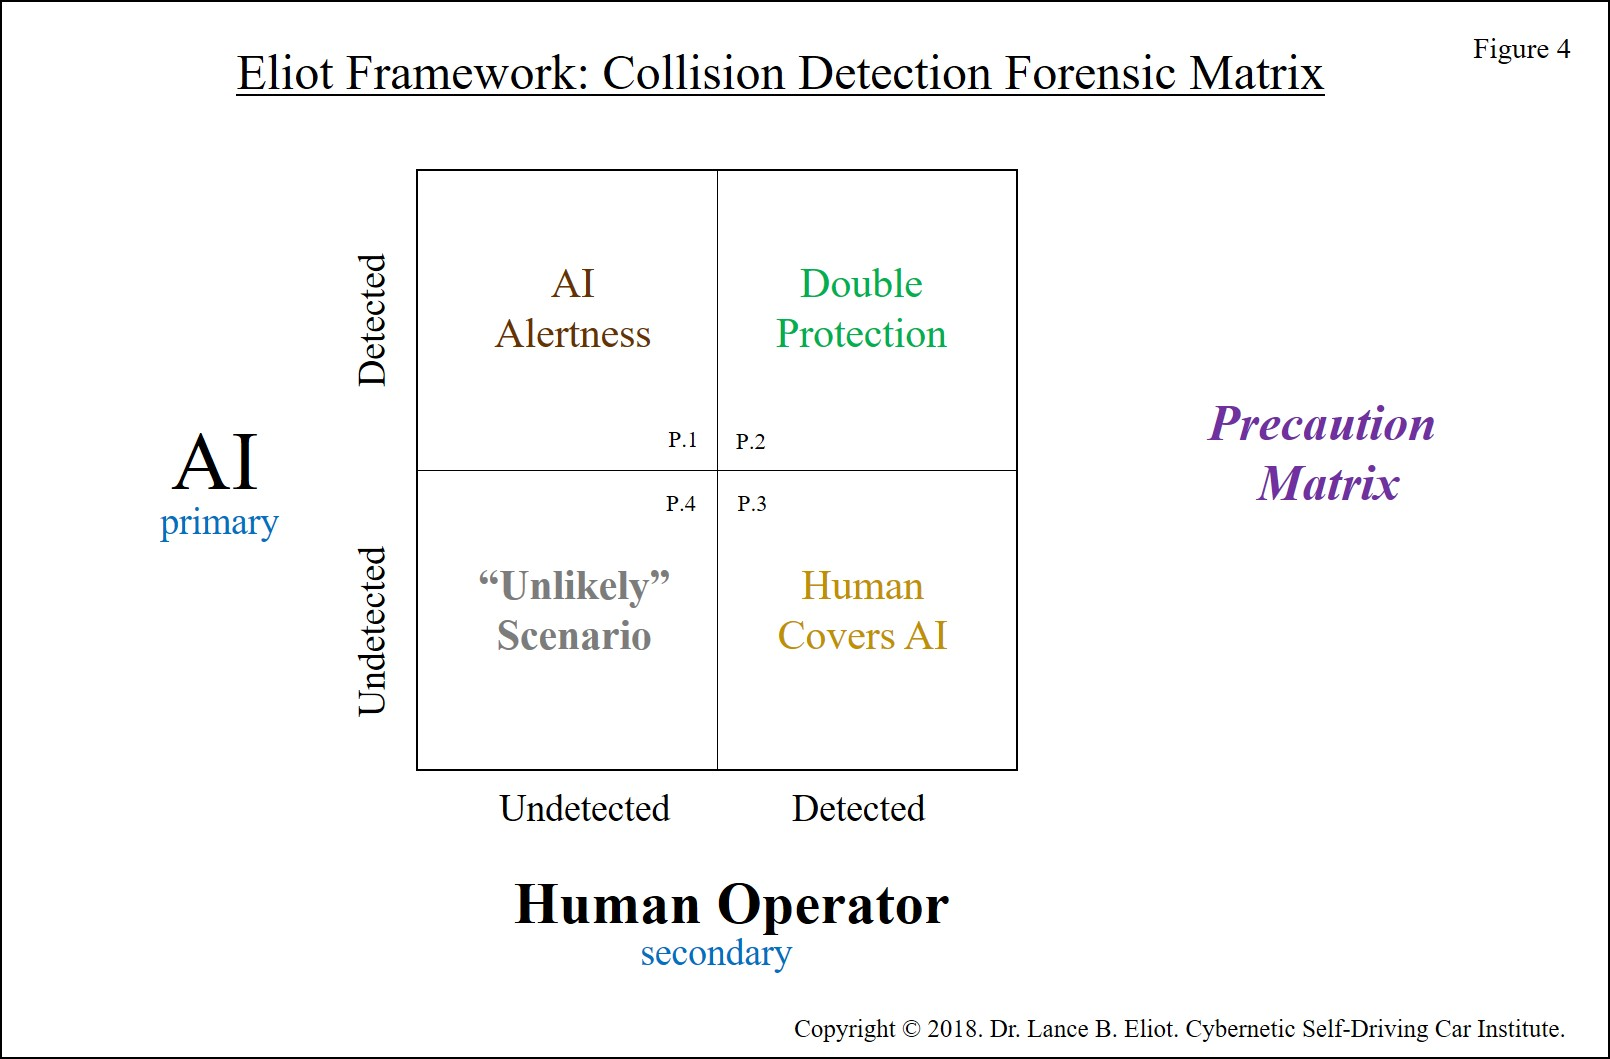 - Lance Eliot Uber Incident Figure 4 300 DPI - Initial Forensic Analysis of the Uber Self-Driving Car Incident in Arizona